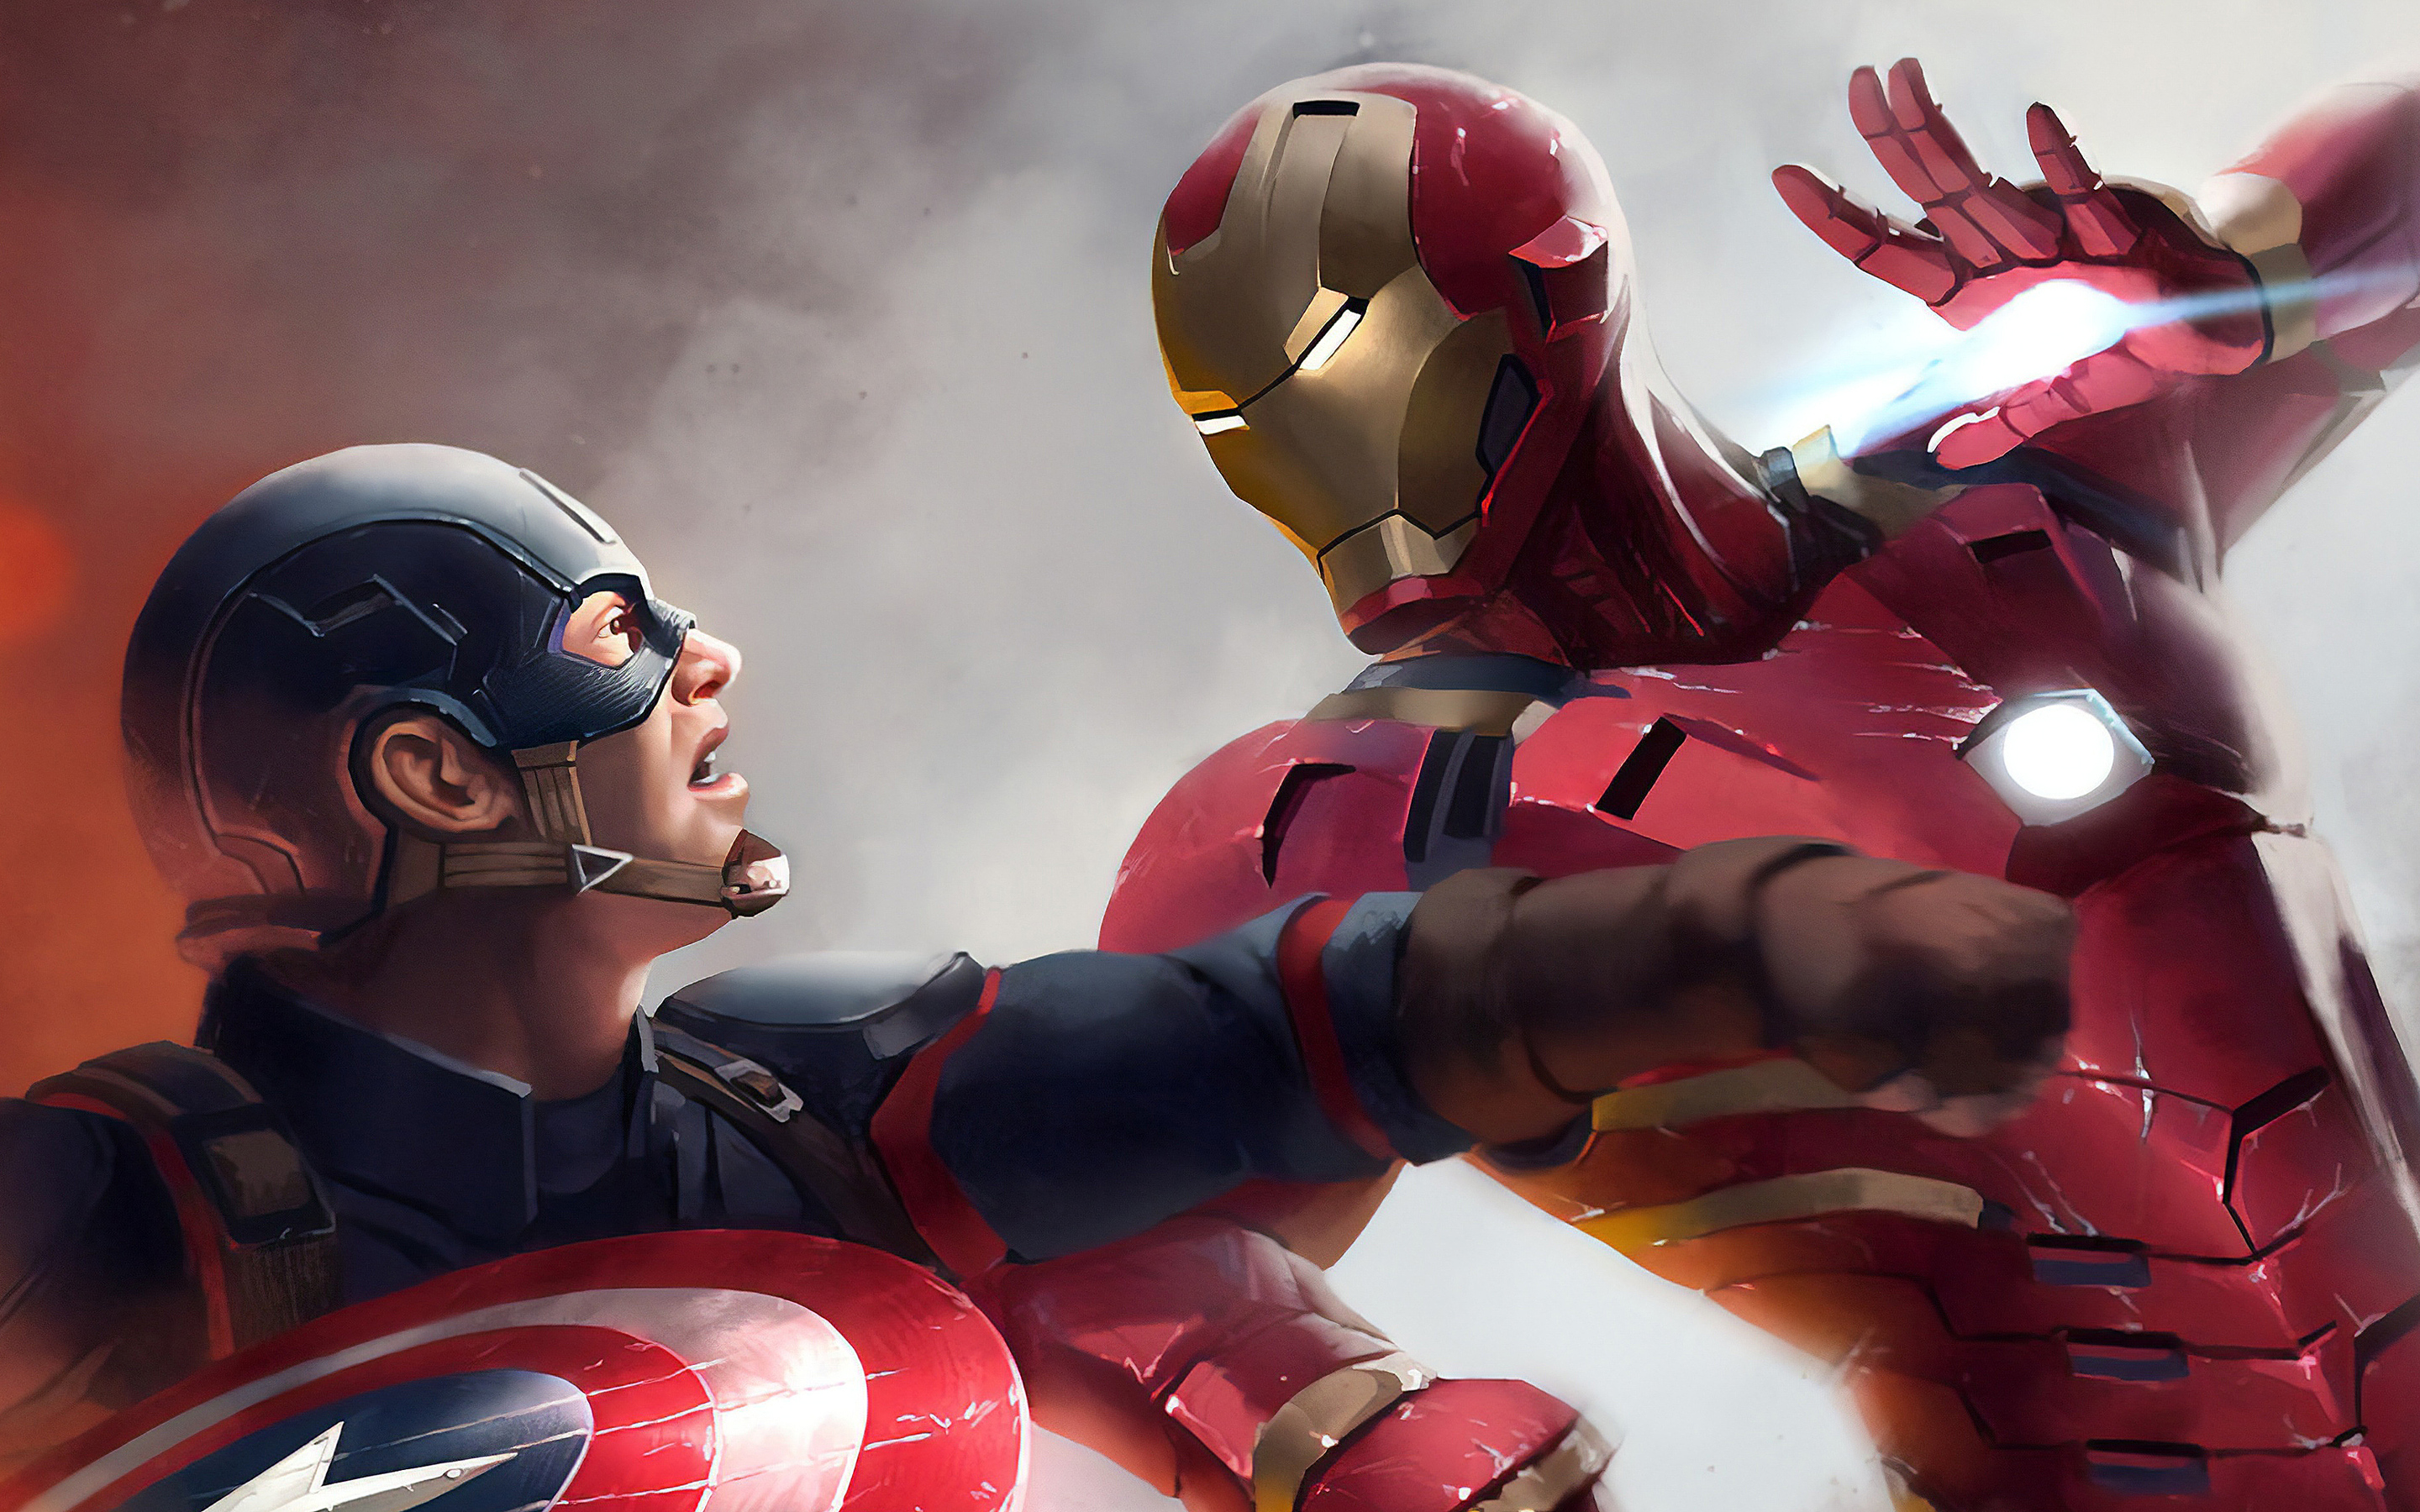 2880x1800 Iron Man Vs Captain America 4k Macbook Pro Retina Hd 4k Wallpapers Images Backgrounds Photos And Pictures